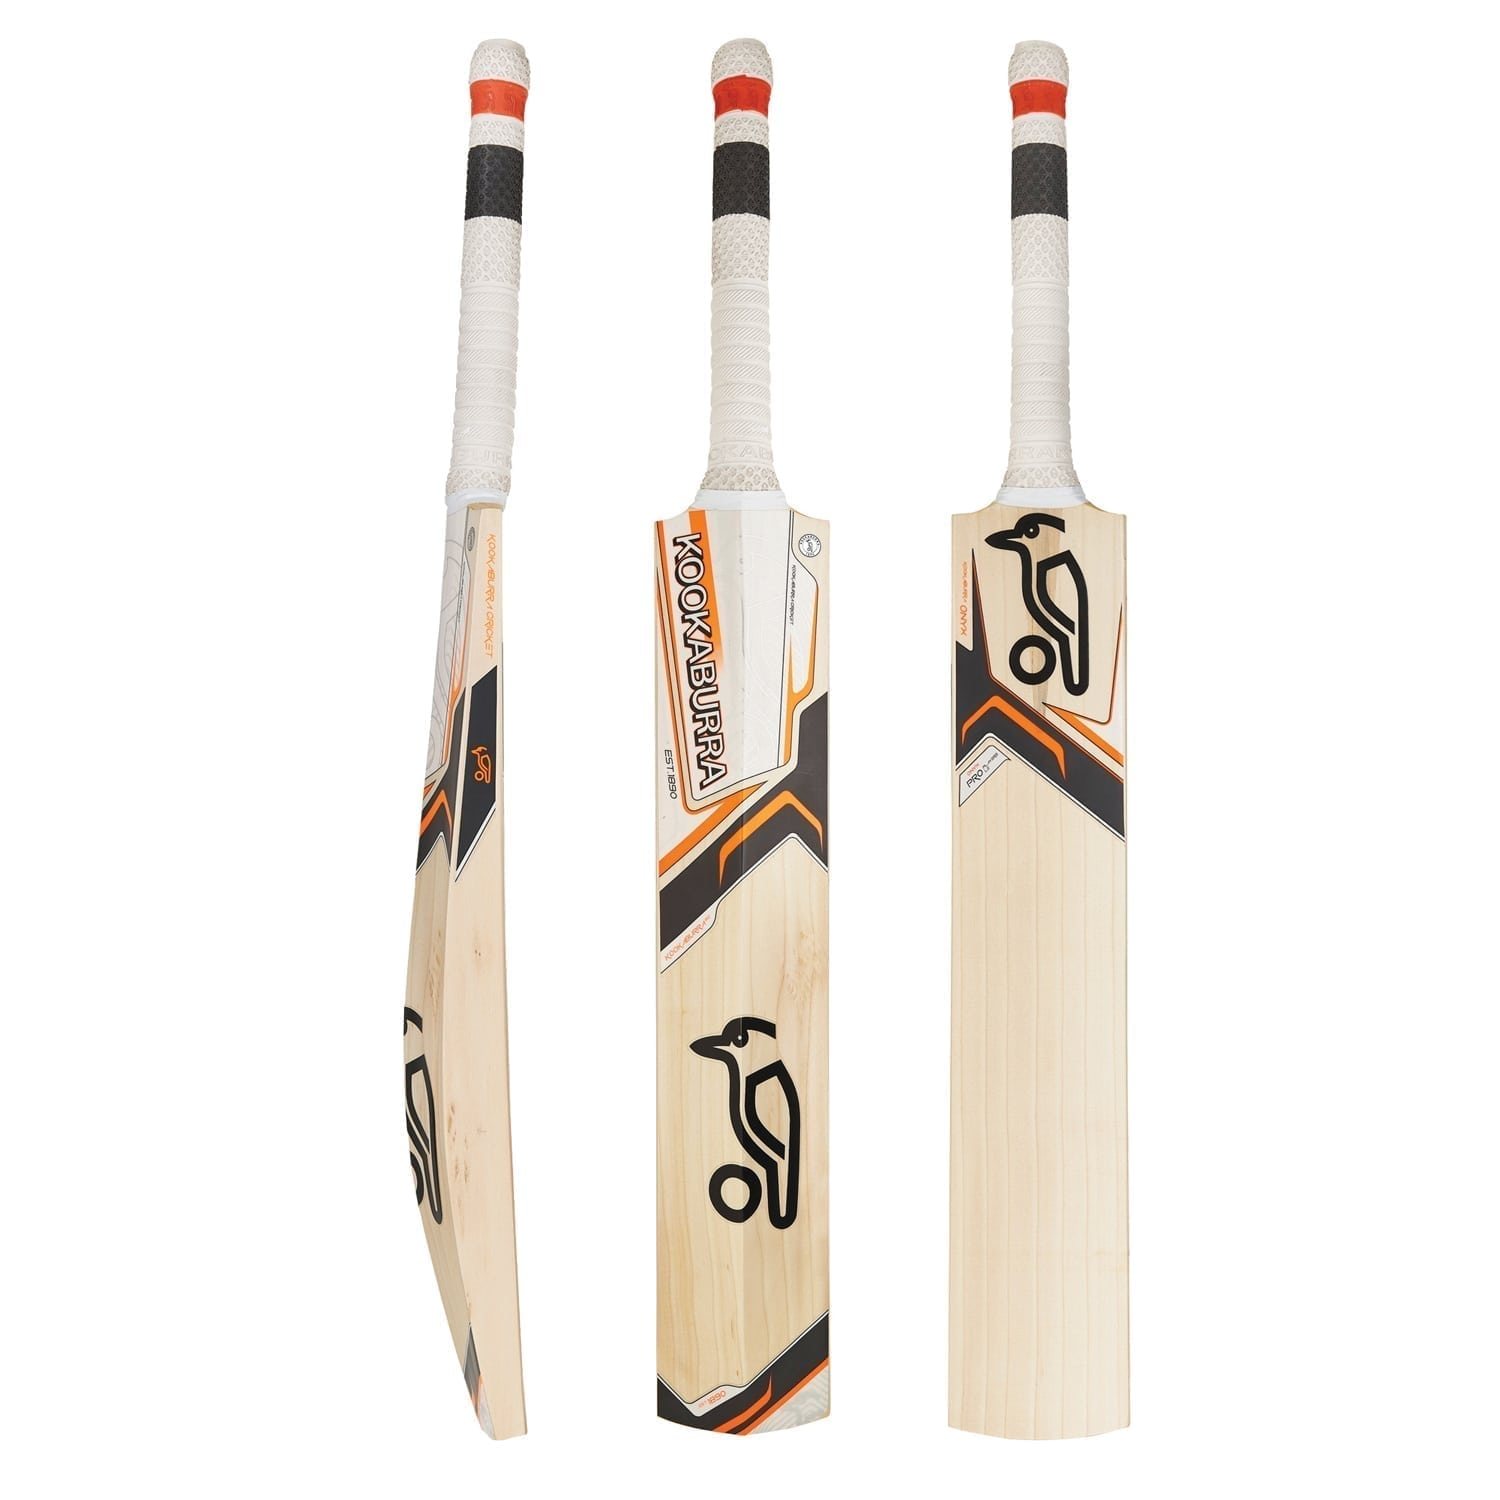 Discussion on this topic: How to Choose a Cricket Bat, how-to-choose-a-cricket-bat/